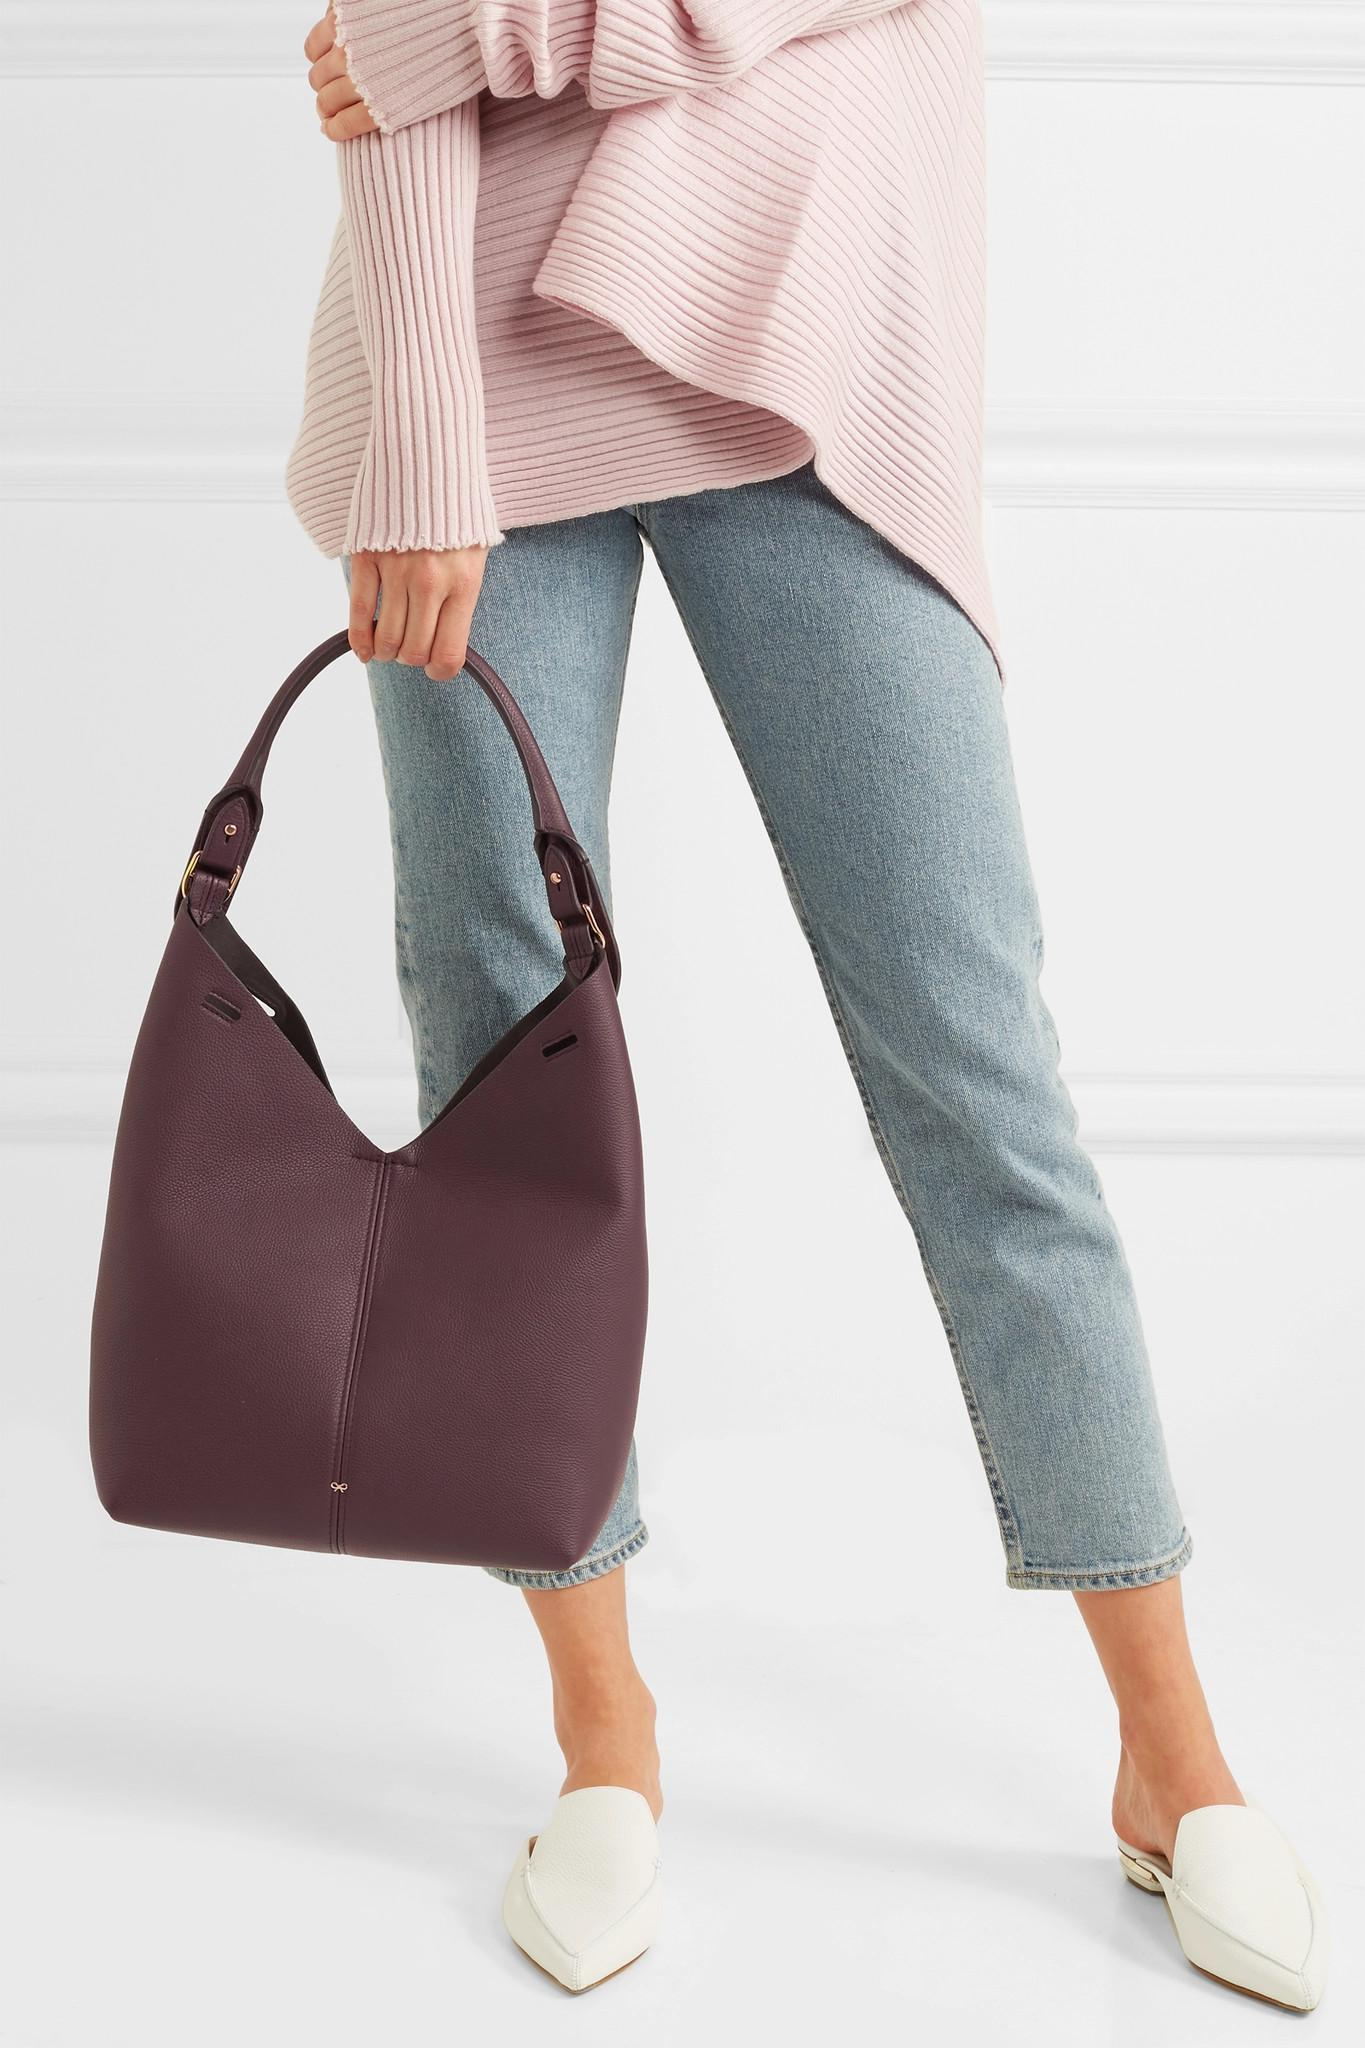 Bucket Small Textured-leather Tote - Plum Anya Hindmarch 4qG32